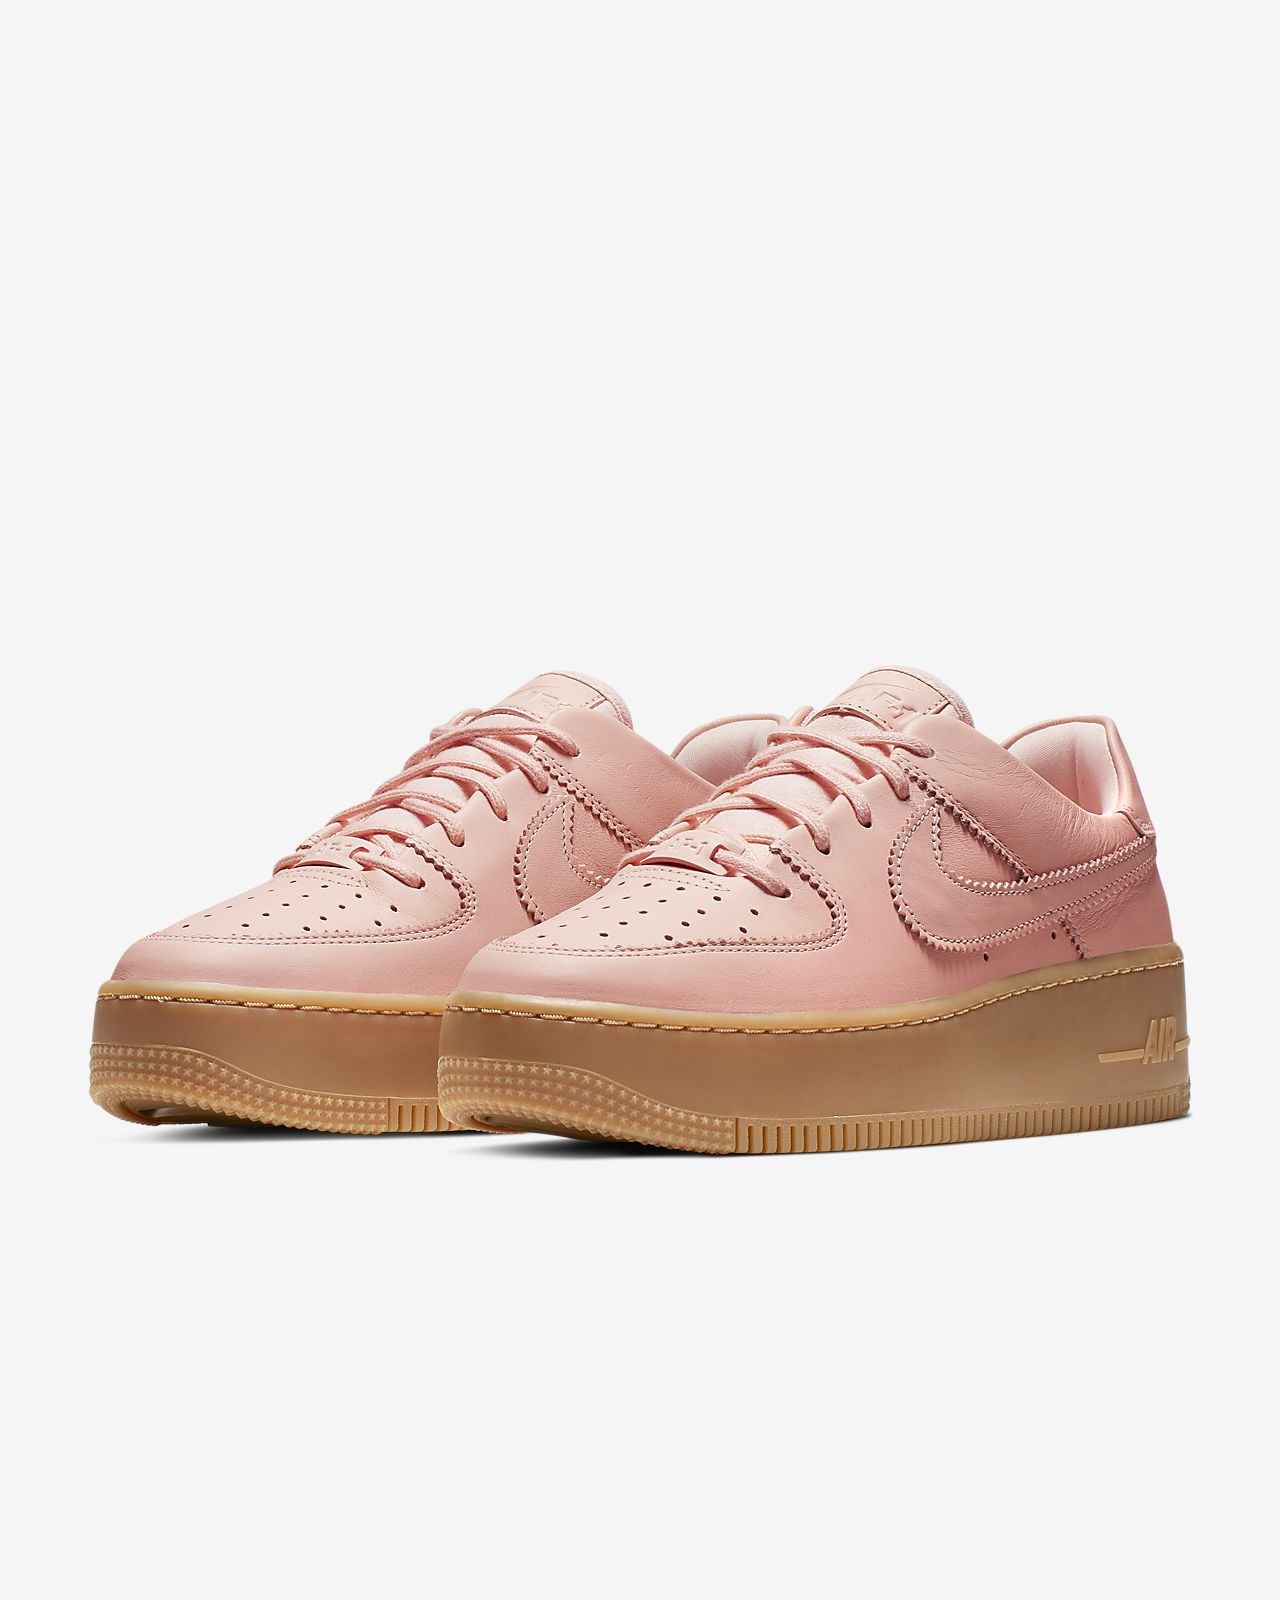 basketball | Nike Damen Wmns Air Force 1 Sage Low LX Light Orewood BrownMelon Tint White, Braun ? Pension Funke